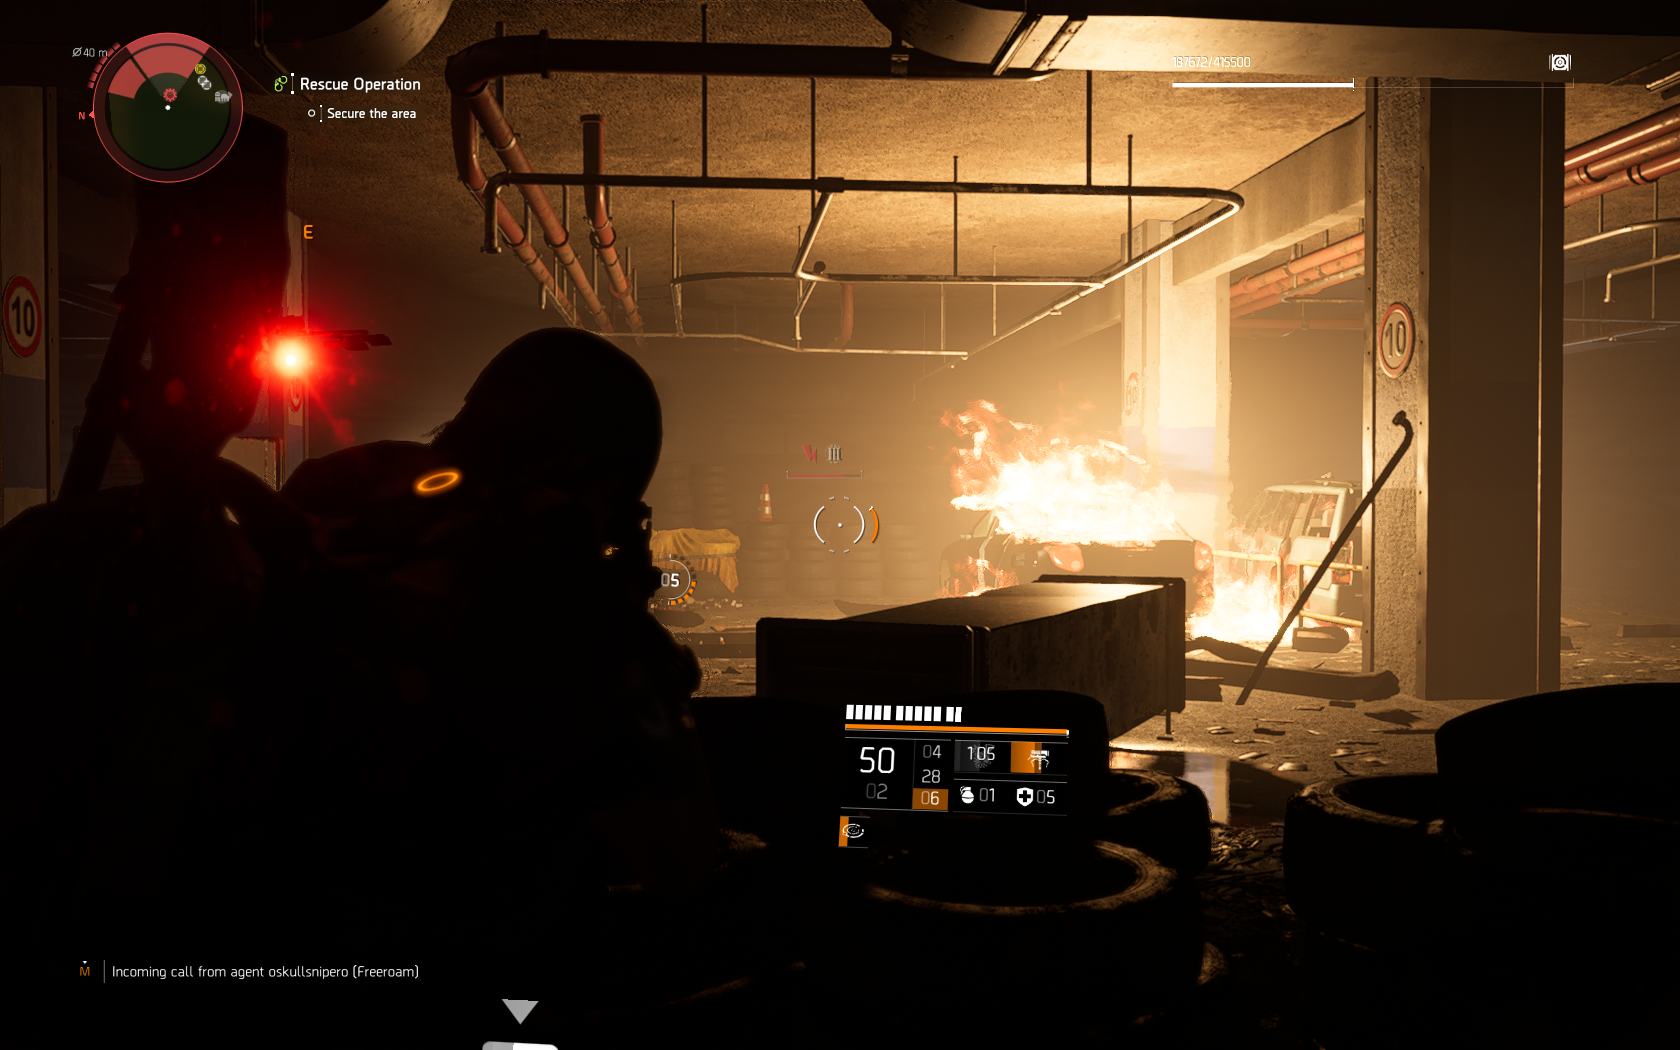 Tom Clancy's The Division 2 Screenshot 2019.03.28 - 21.26.46.19.png